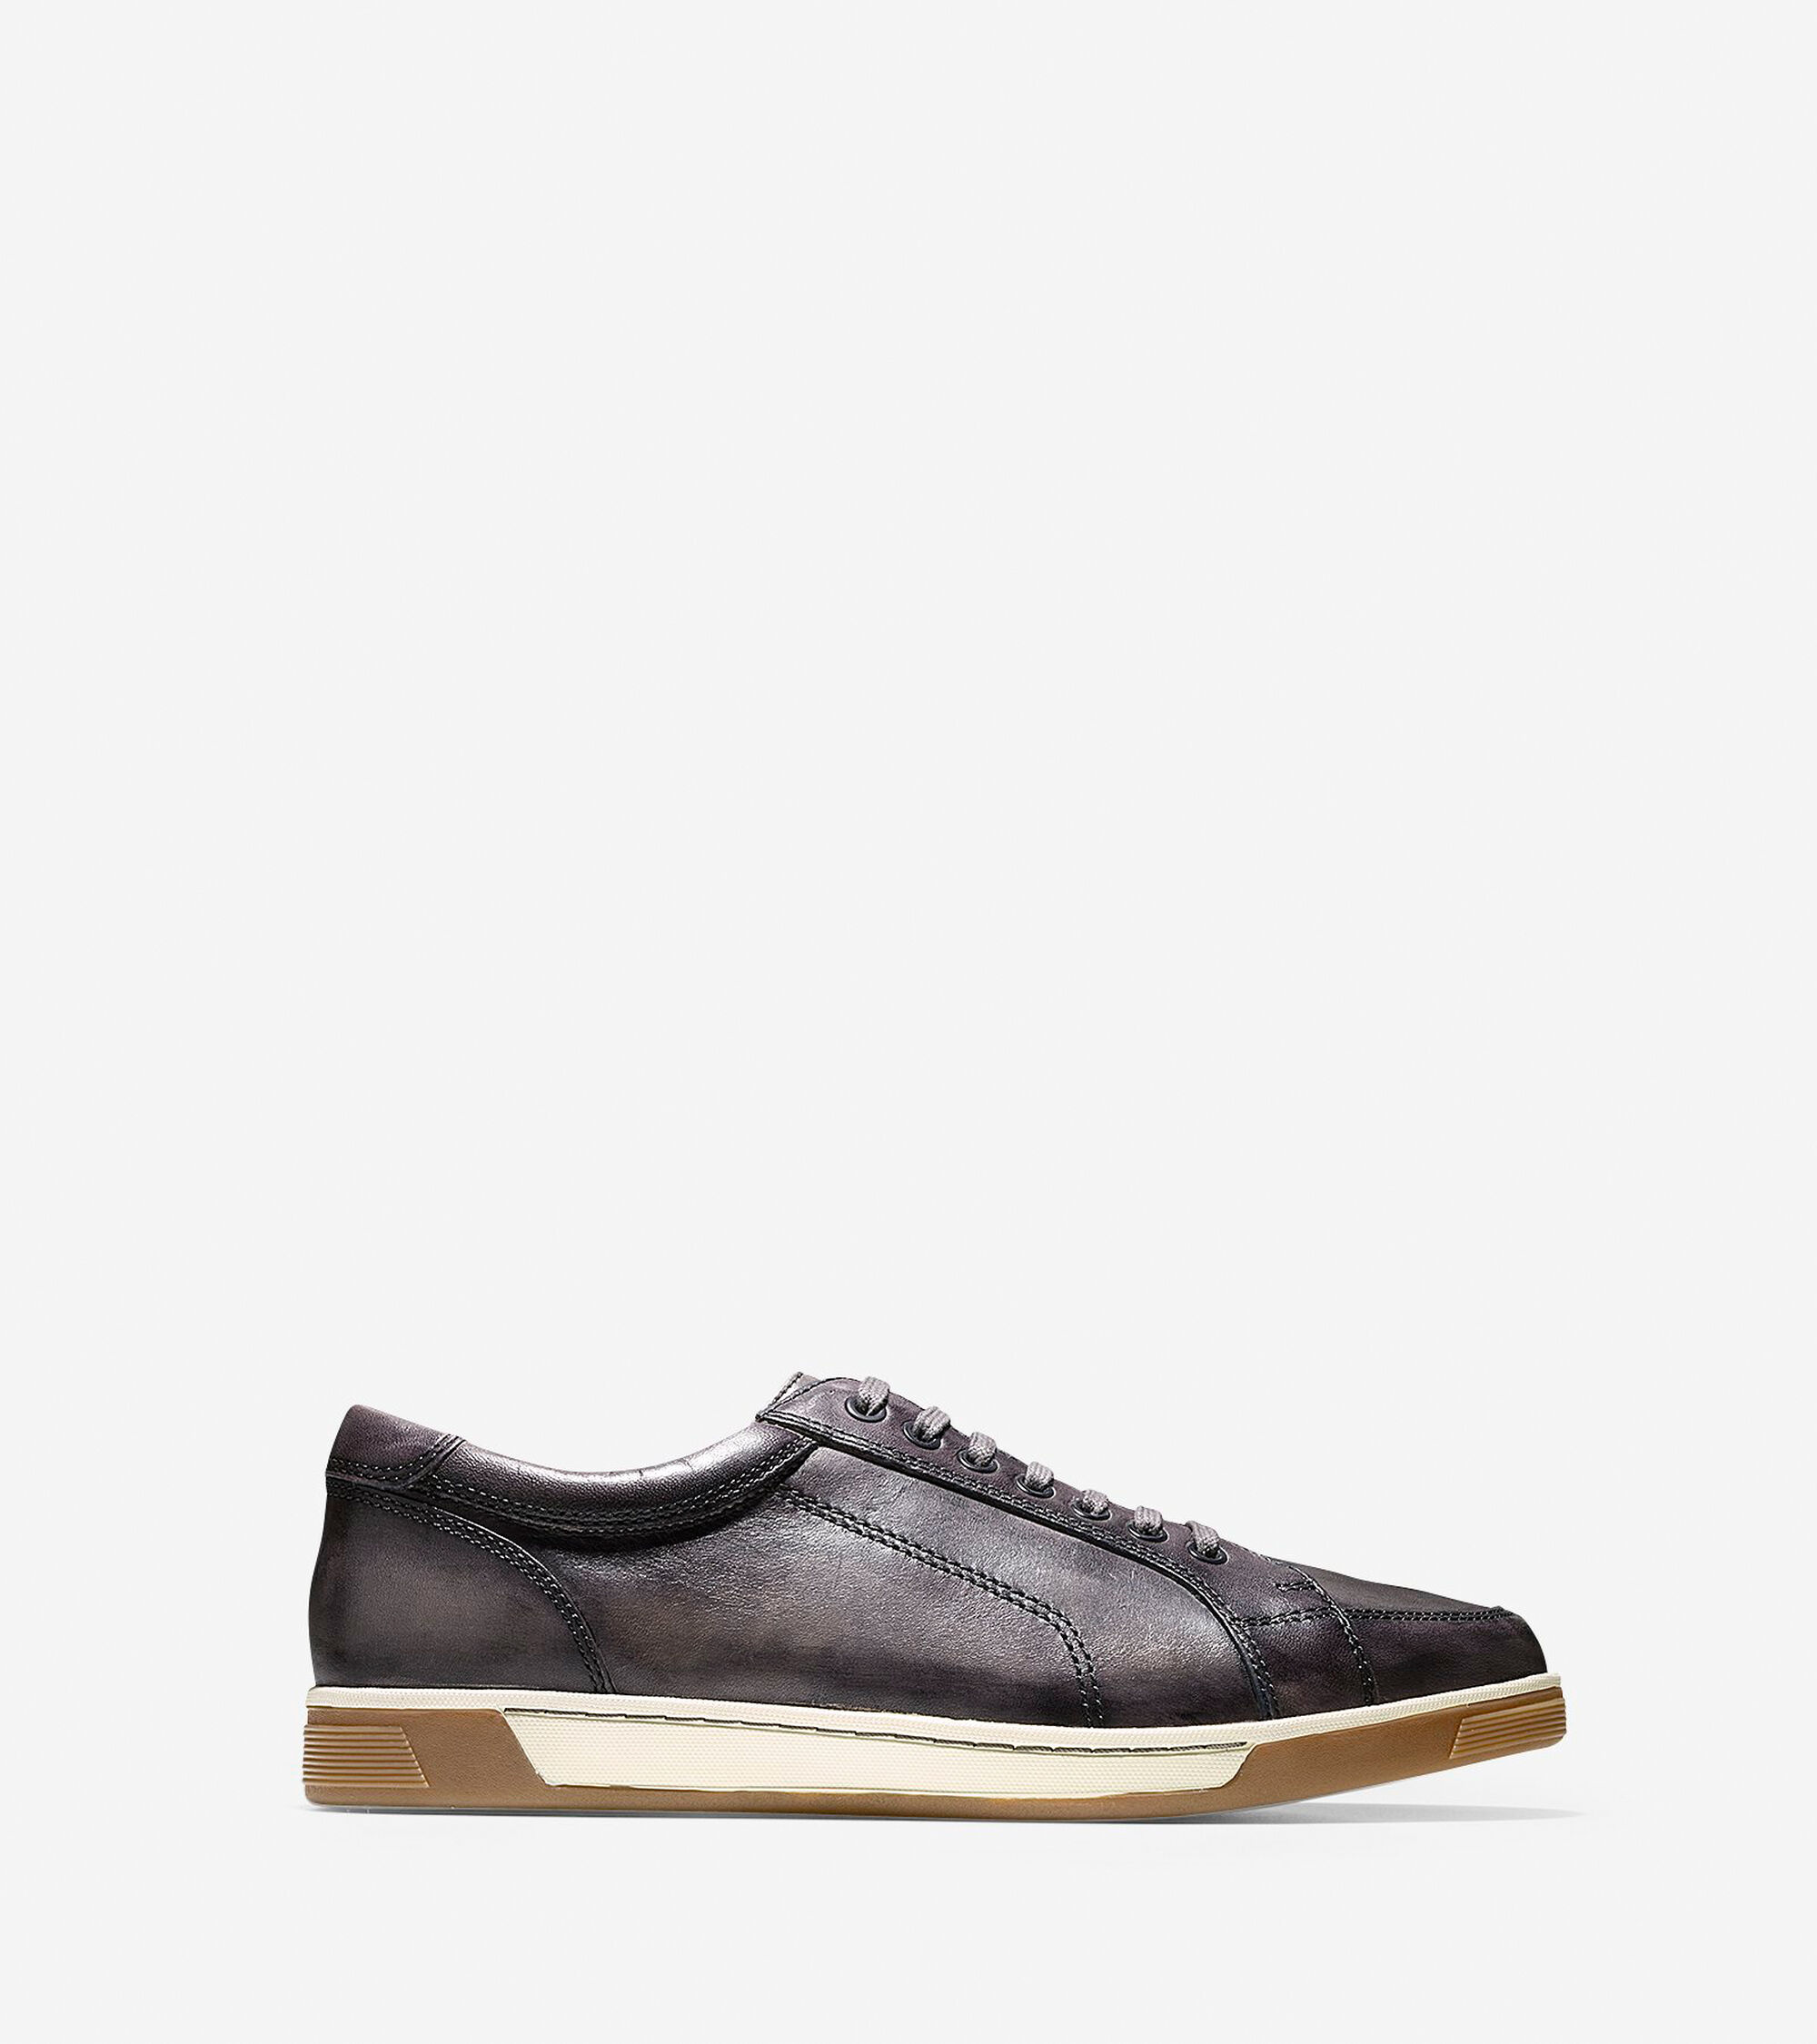 Sneakers > Vartan Hand-Stained Sport Oxford